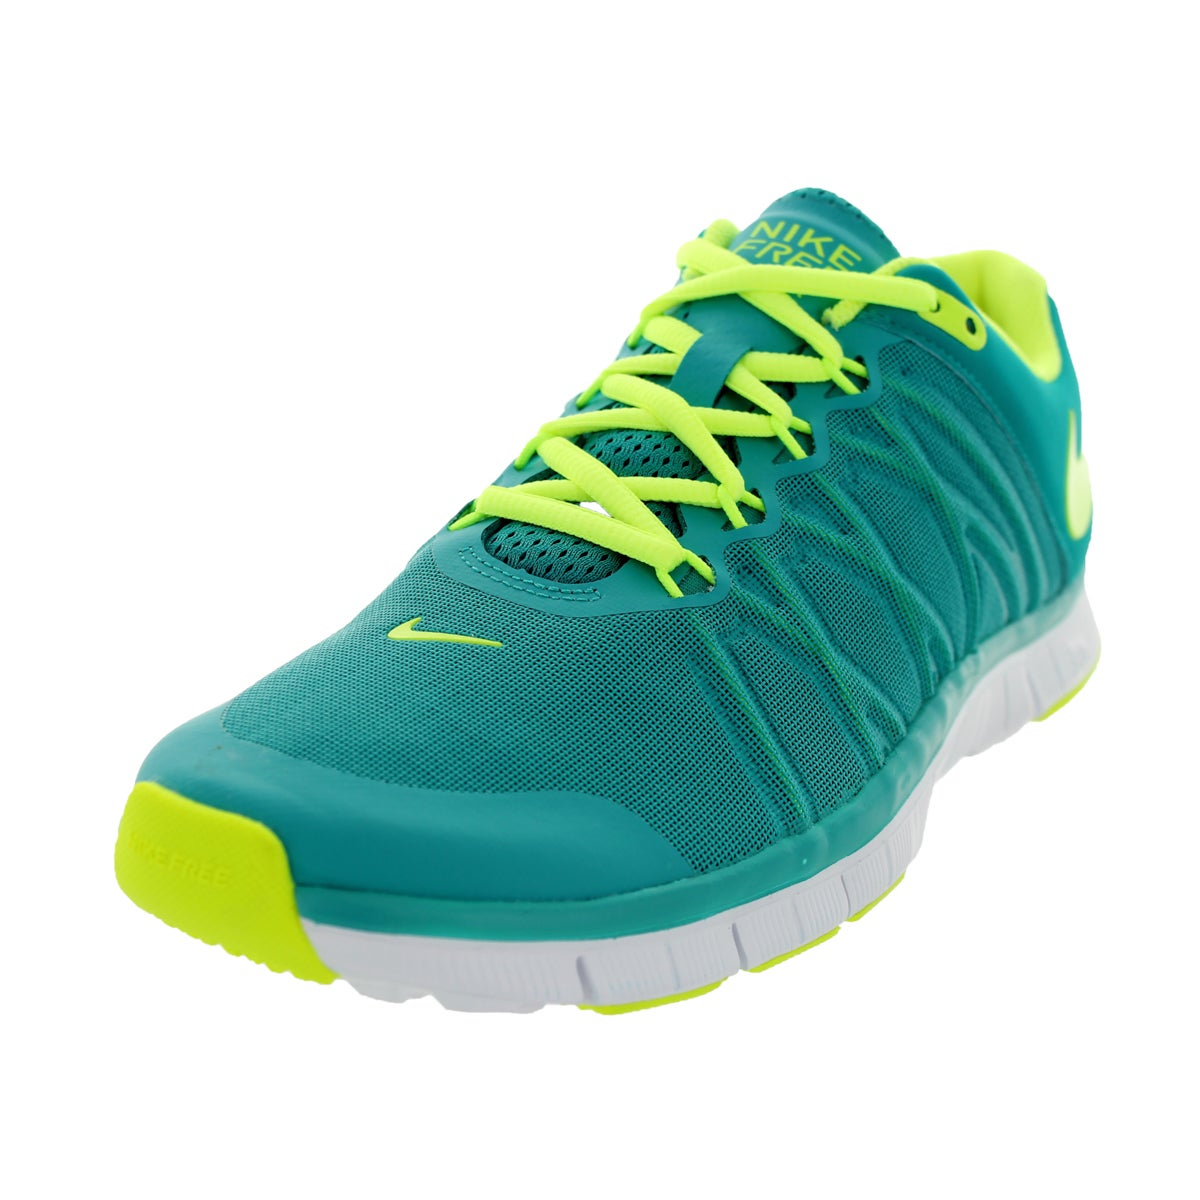 on sale e229e 8dd3d Shop Nike Men s Free Trainer 3.0 Turbo Green, Volt, and White Mesh Training  Shoes - Free Shipping Today - Overstock - 12115482